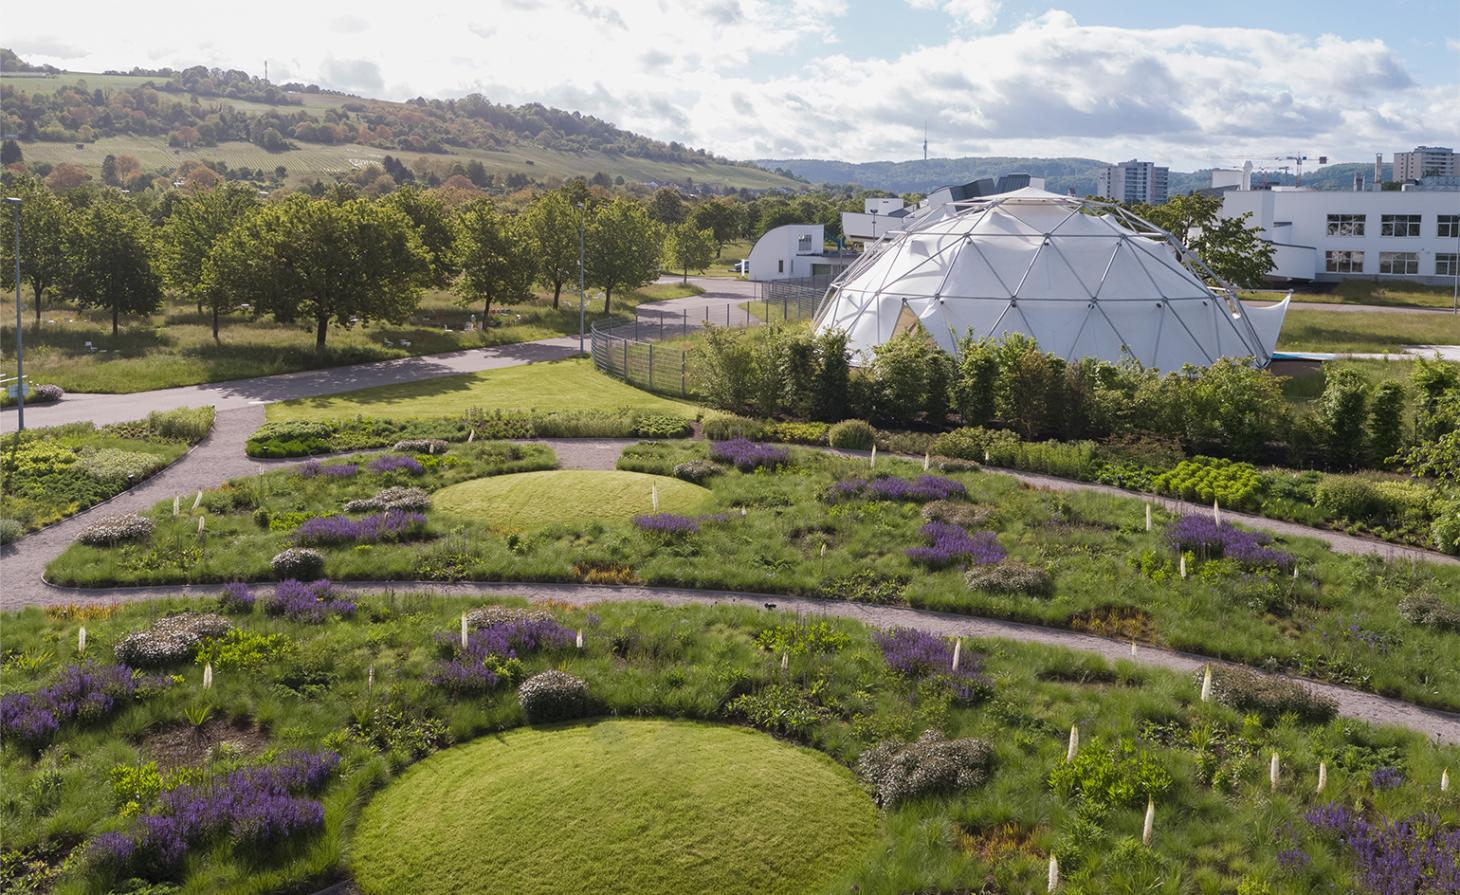 The countryside near Weil am Rhein, Germany, where the Vitra Campus is located. Visible is a dome by Buckminster Fuller among greenery and purple flowers, part of Piet Oudolf's garden design